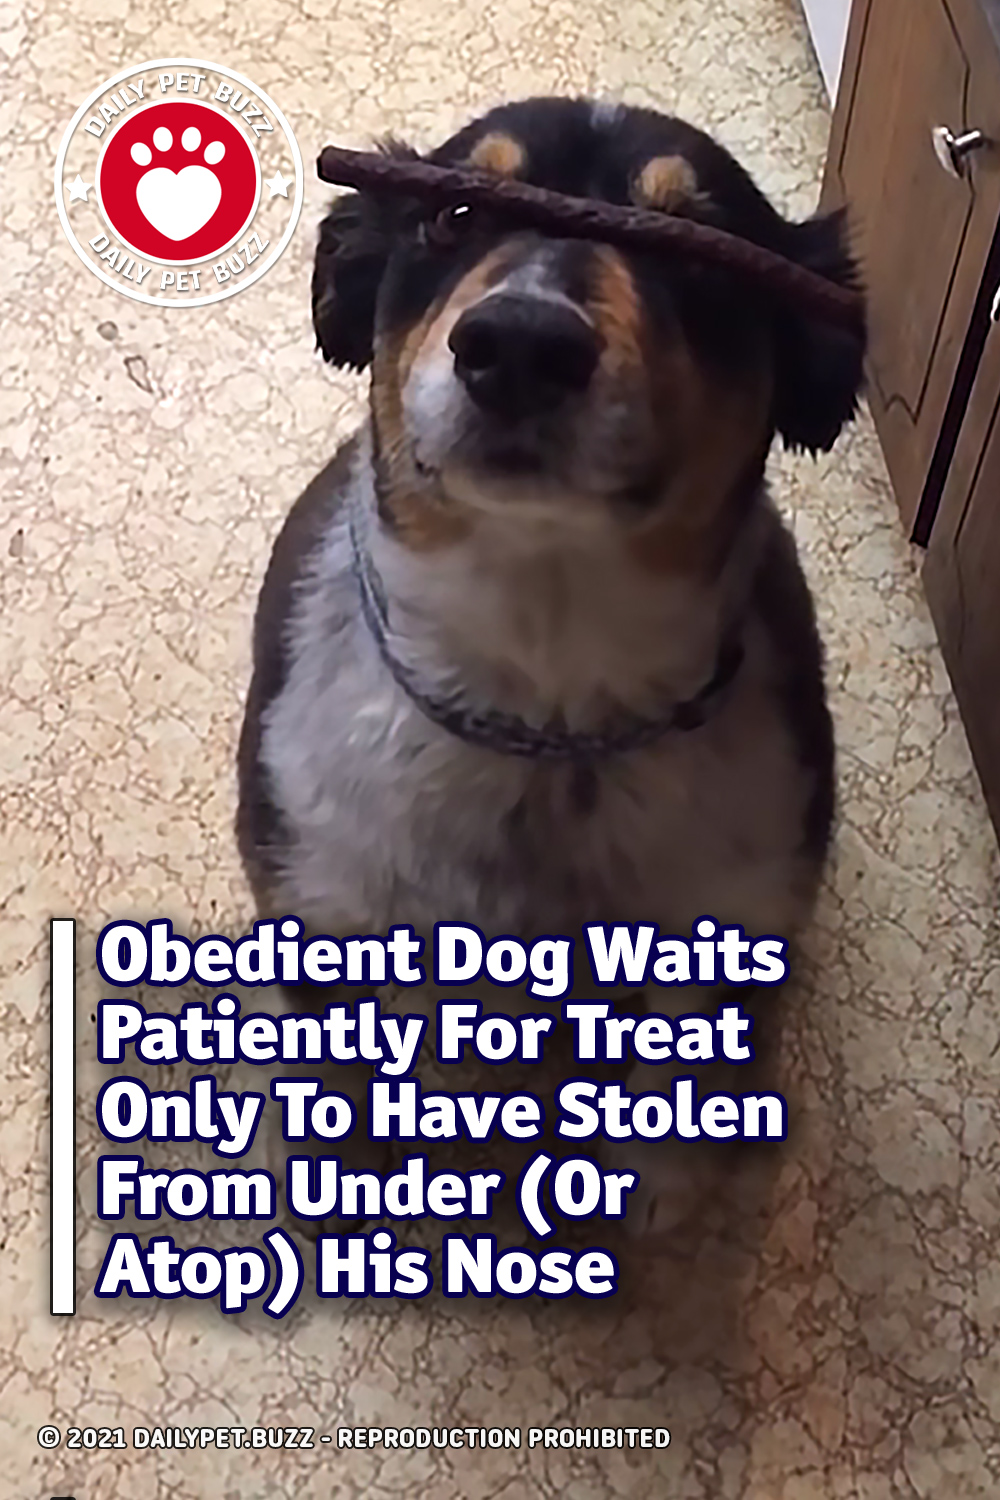 Obedient Dog Waits Patiently For Treat Only To Have It Stolen From Under (Or Atop) His Nose